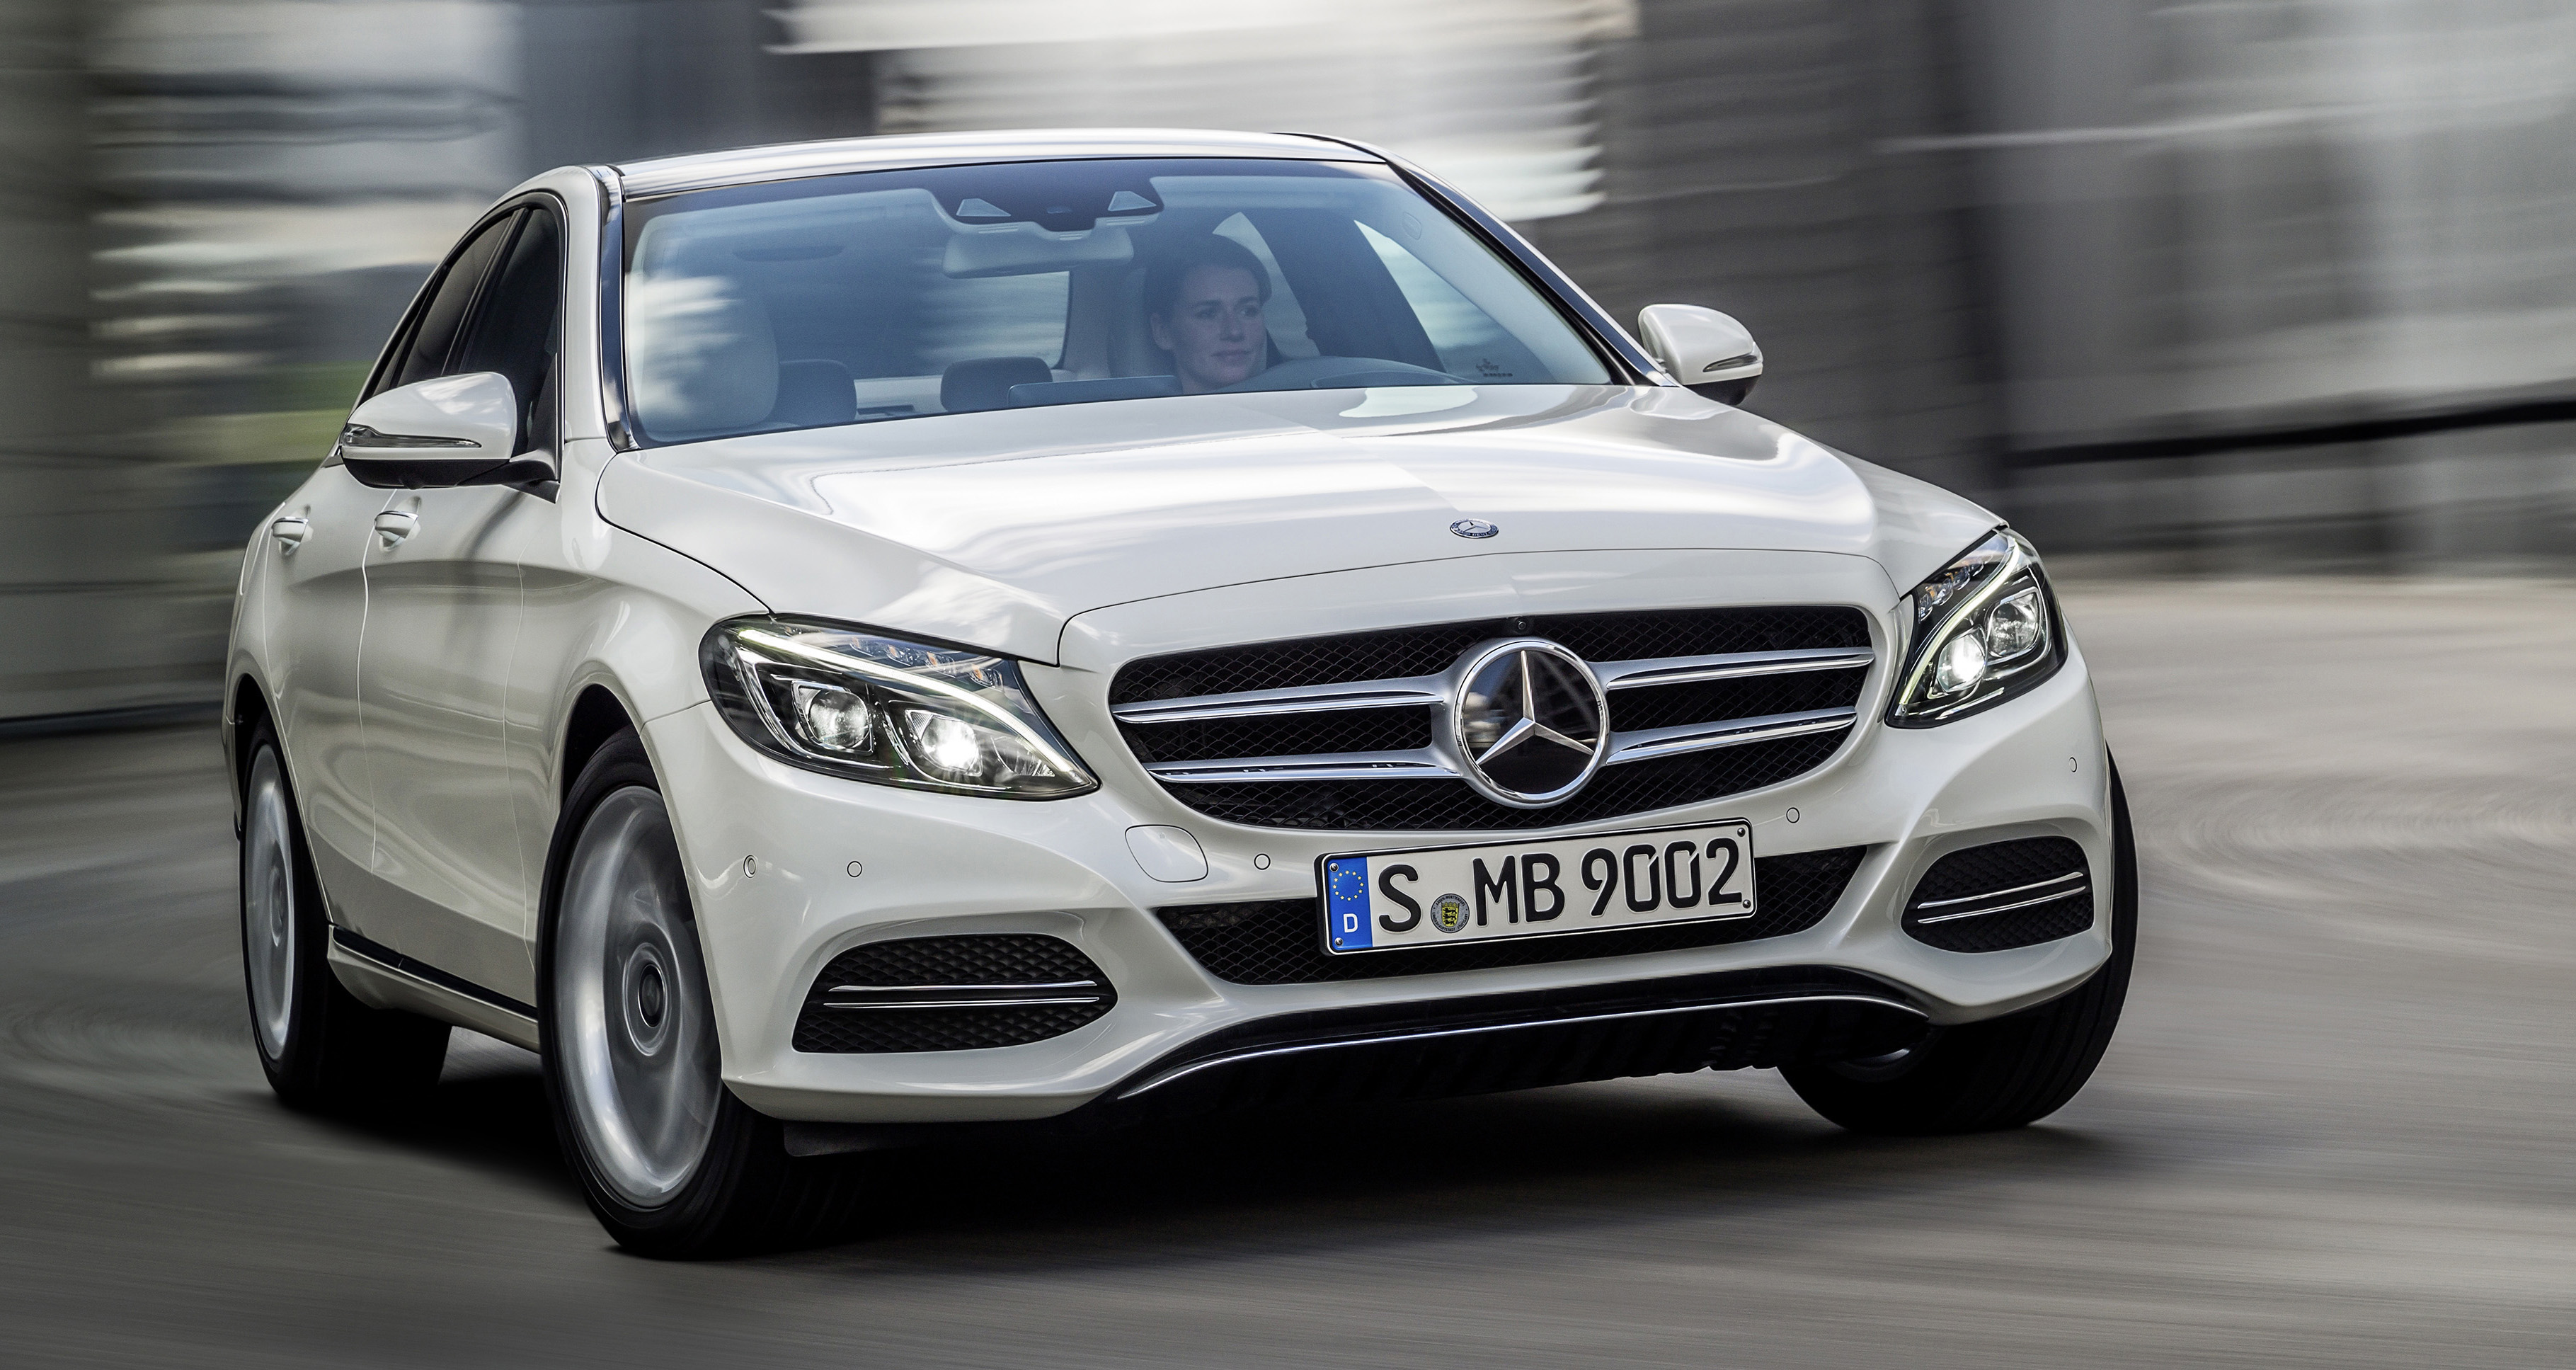 W205 mercedes benz c class first details released image for Mercedes benz w205